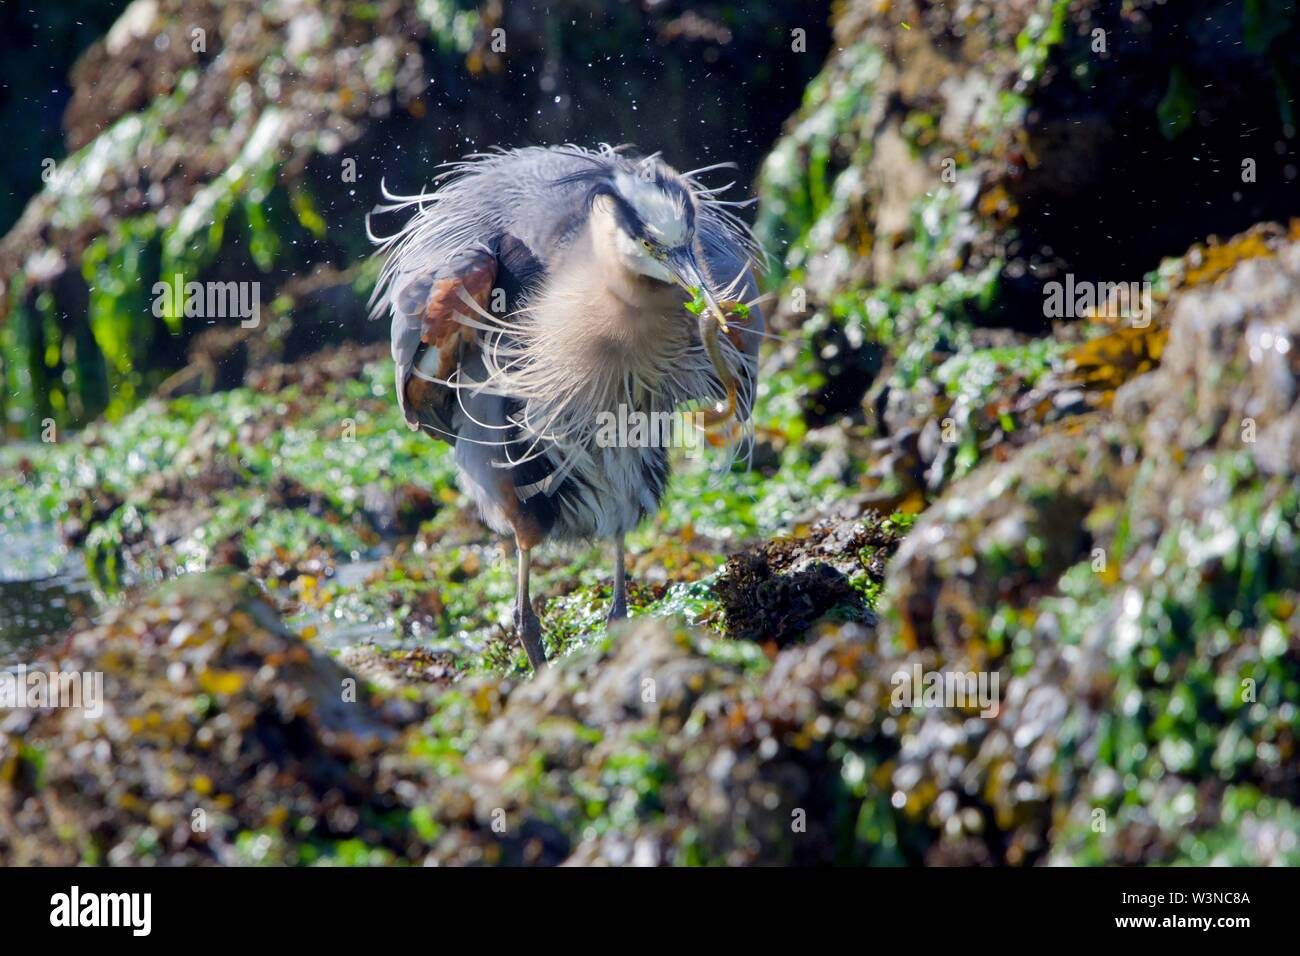 Heron shakes itself after catching a fish, its feathers fluffed out, Clover Point, Victoria, British Columbia. - Stock Image